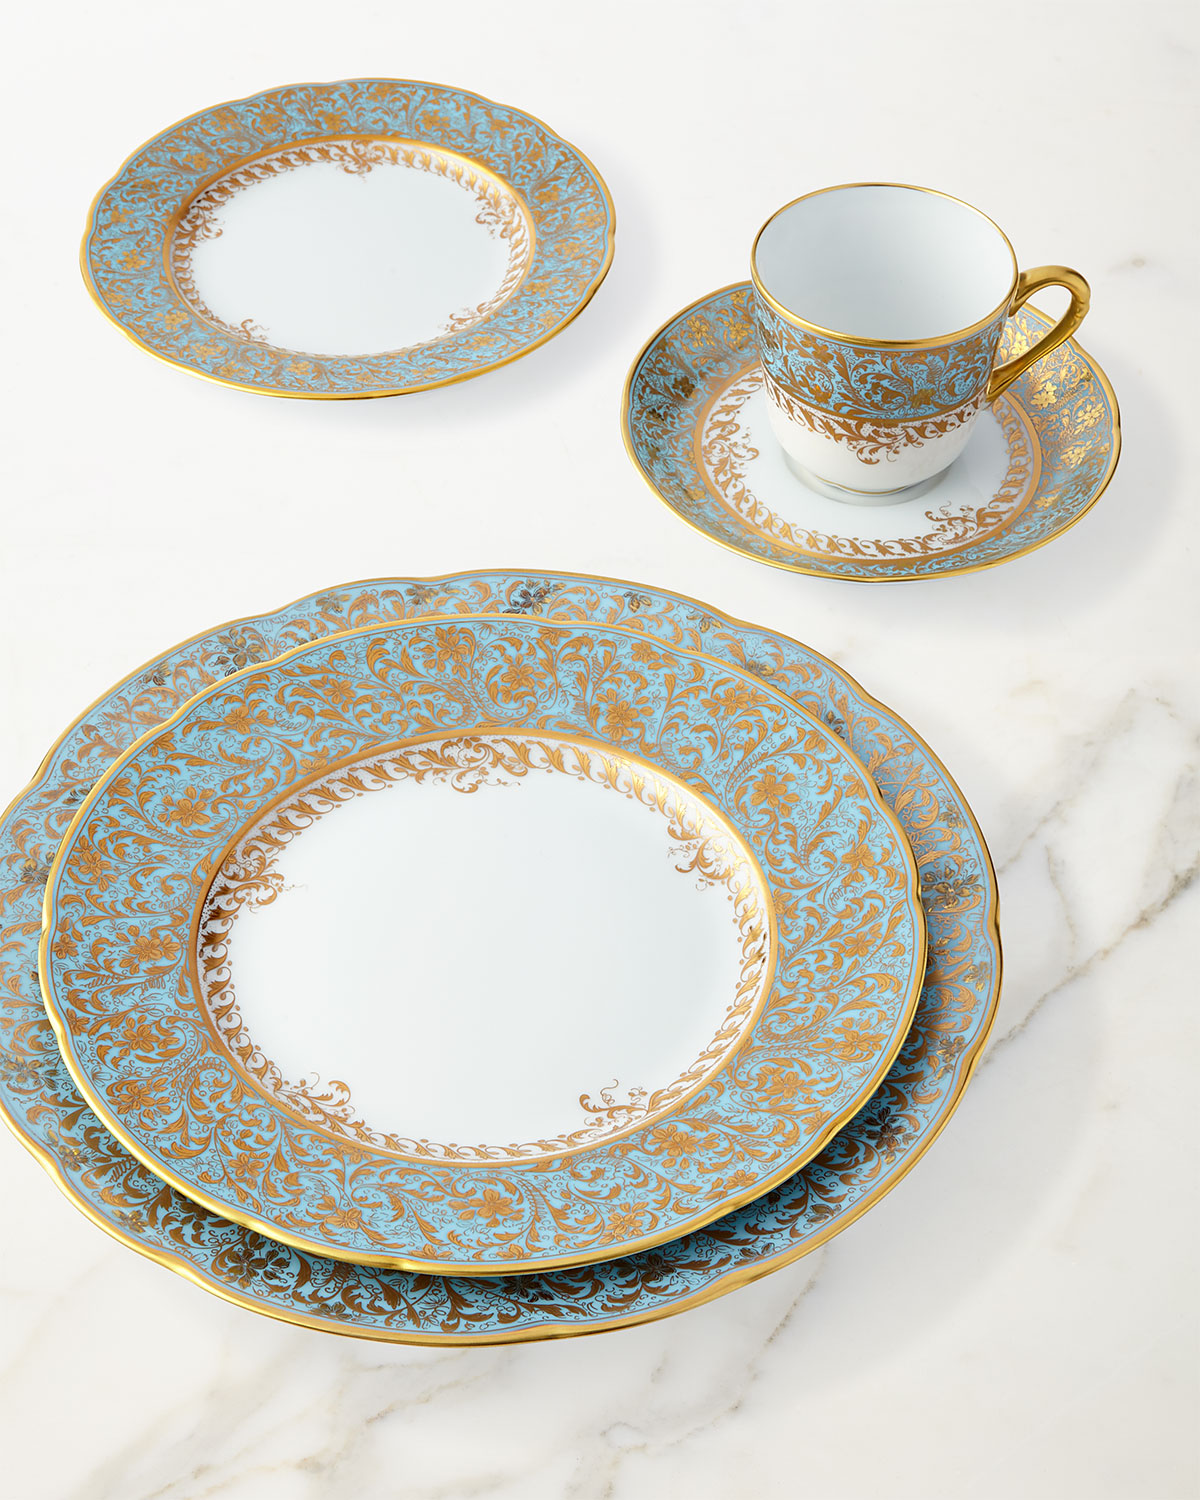 Eden Turquoise Coffee Saucer